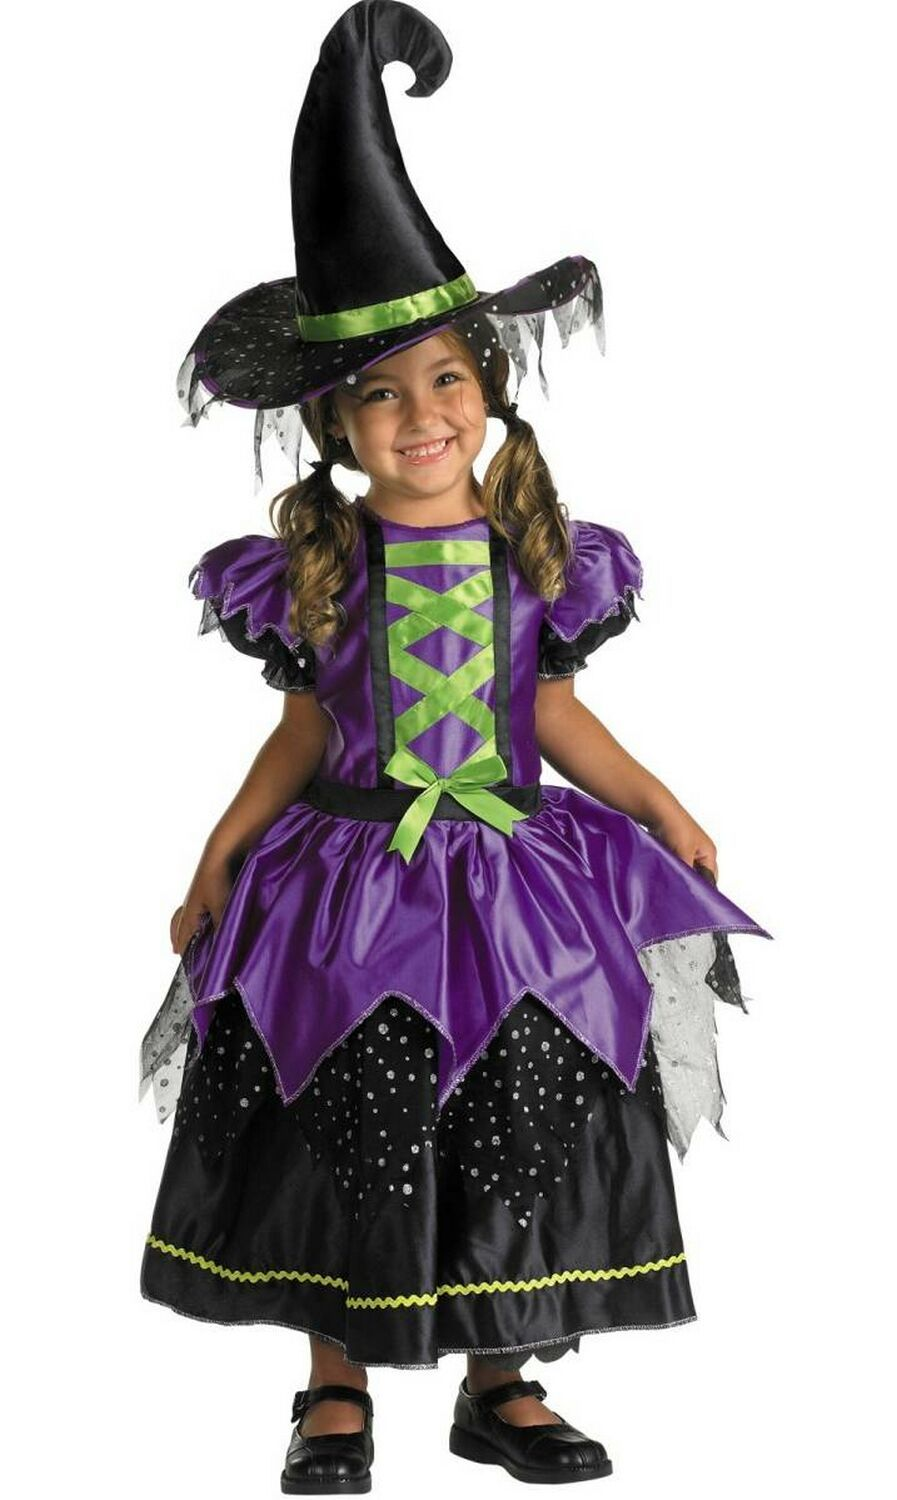 kid+witch+costumes   Kids Magical Witch Costume $31.89   i heart ...